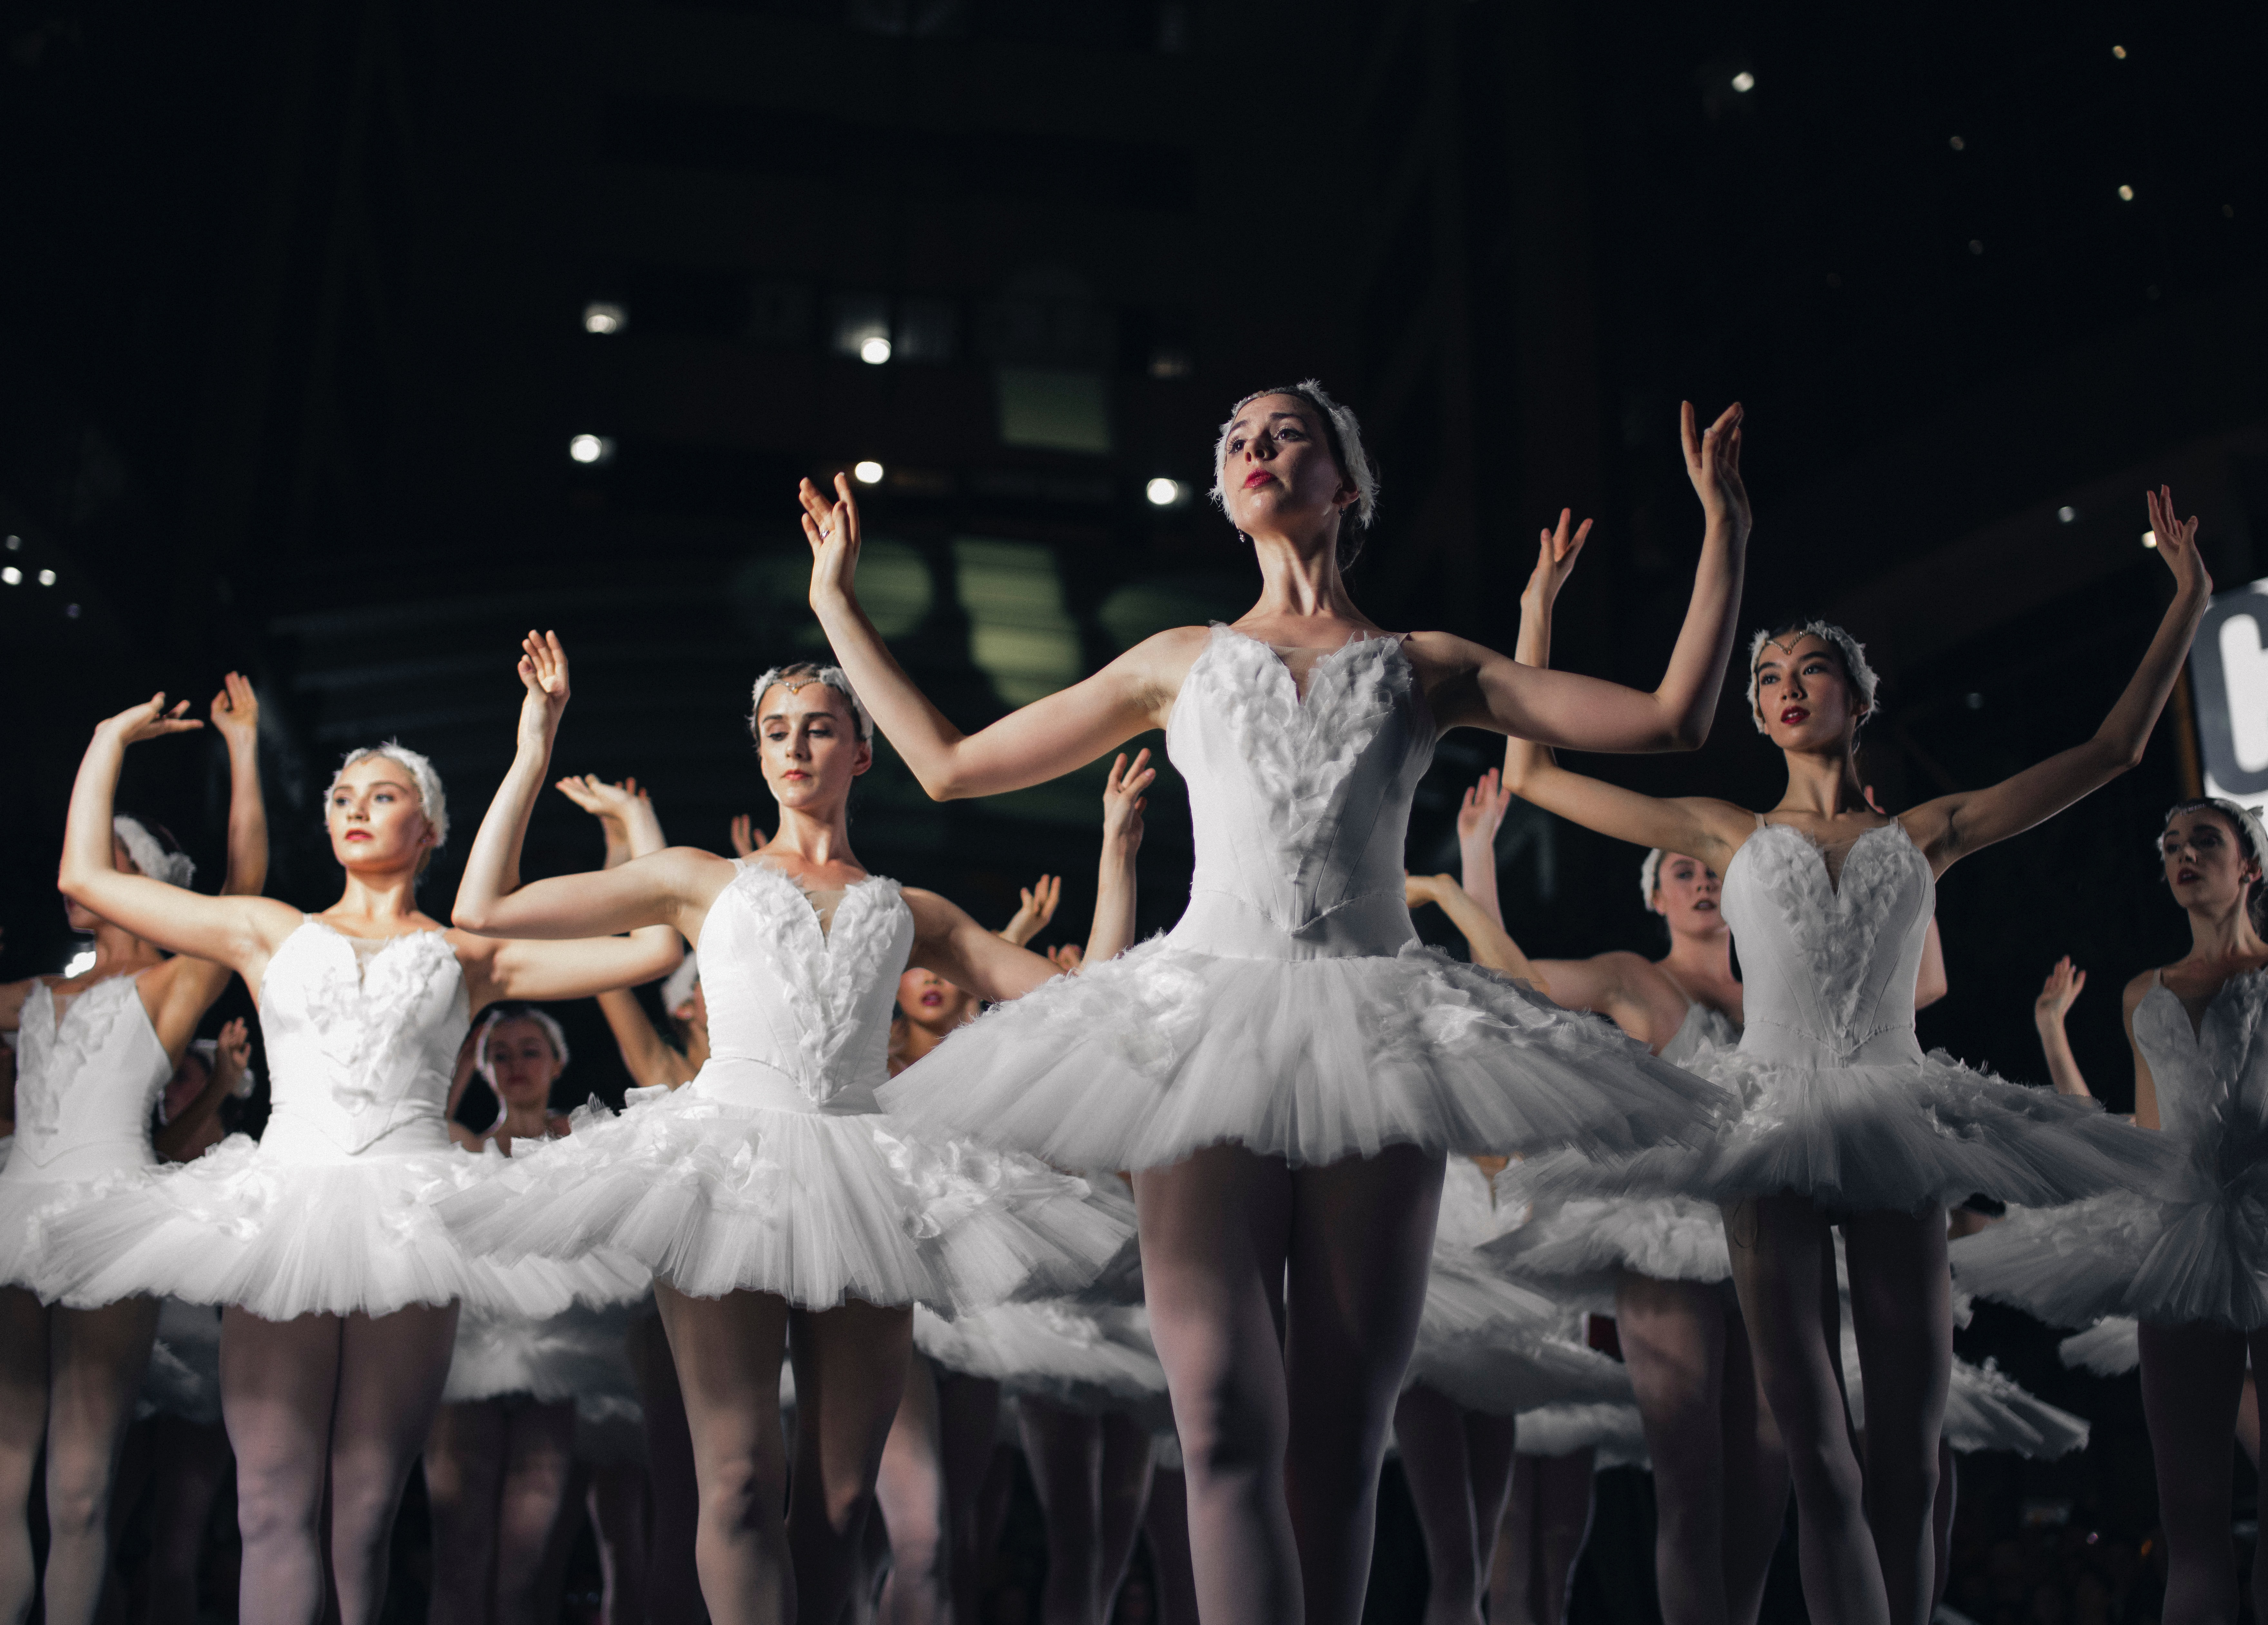 swan lake virtual ballet performance stage culture experience home local authentic localbini biniblog travel